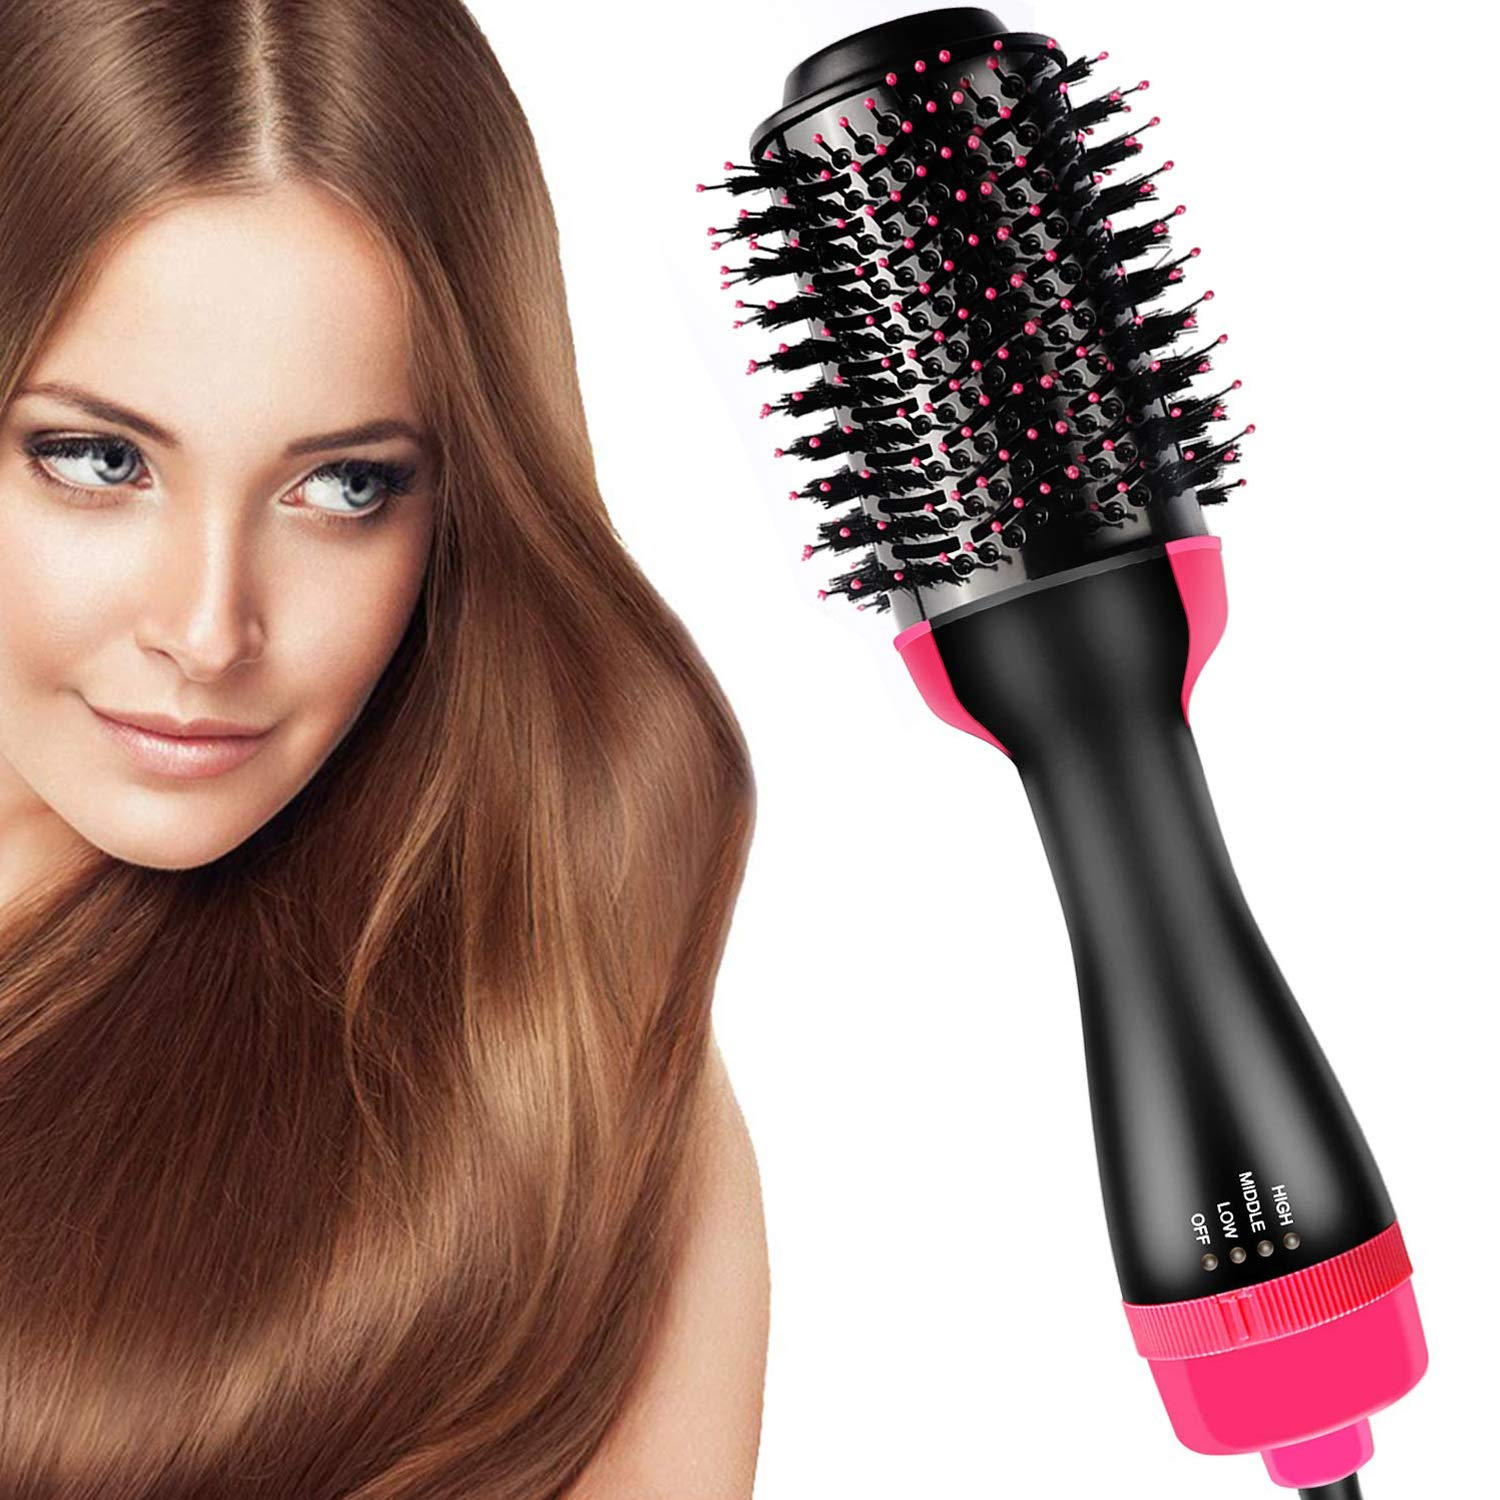 3 in 1 Brush Blow Dryer